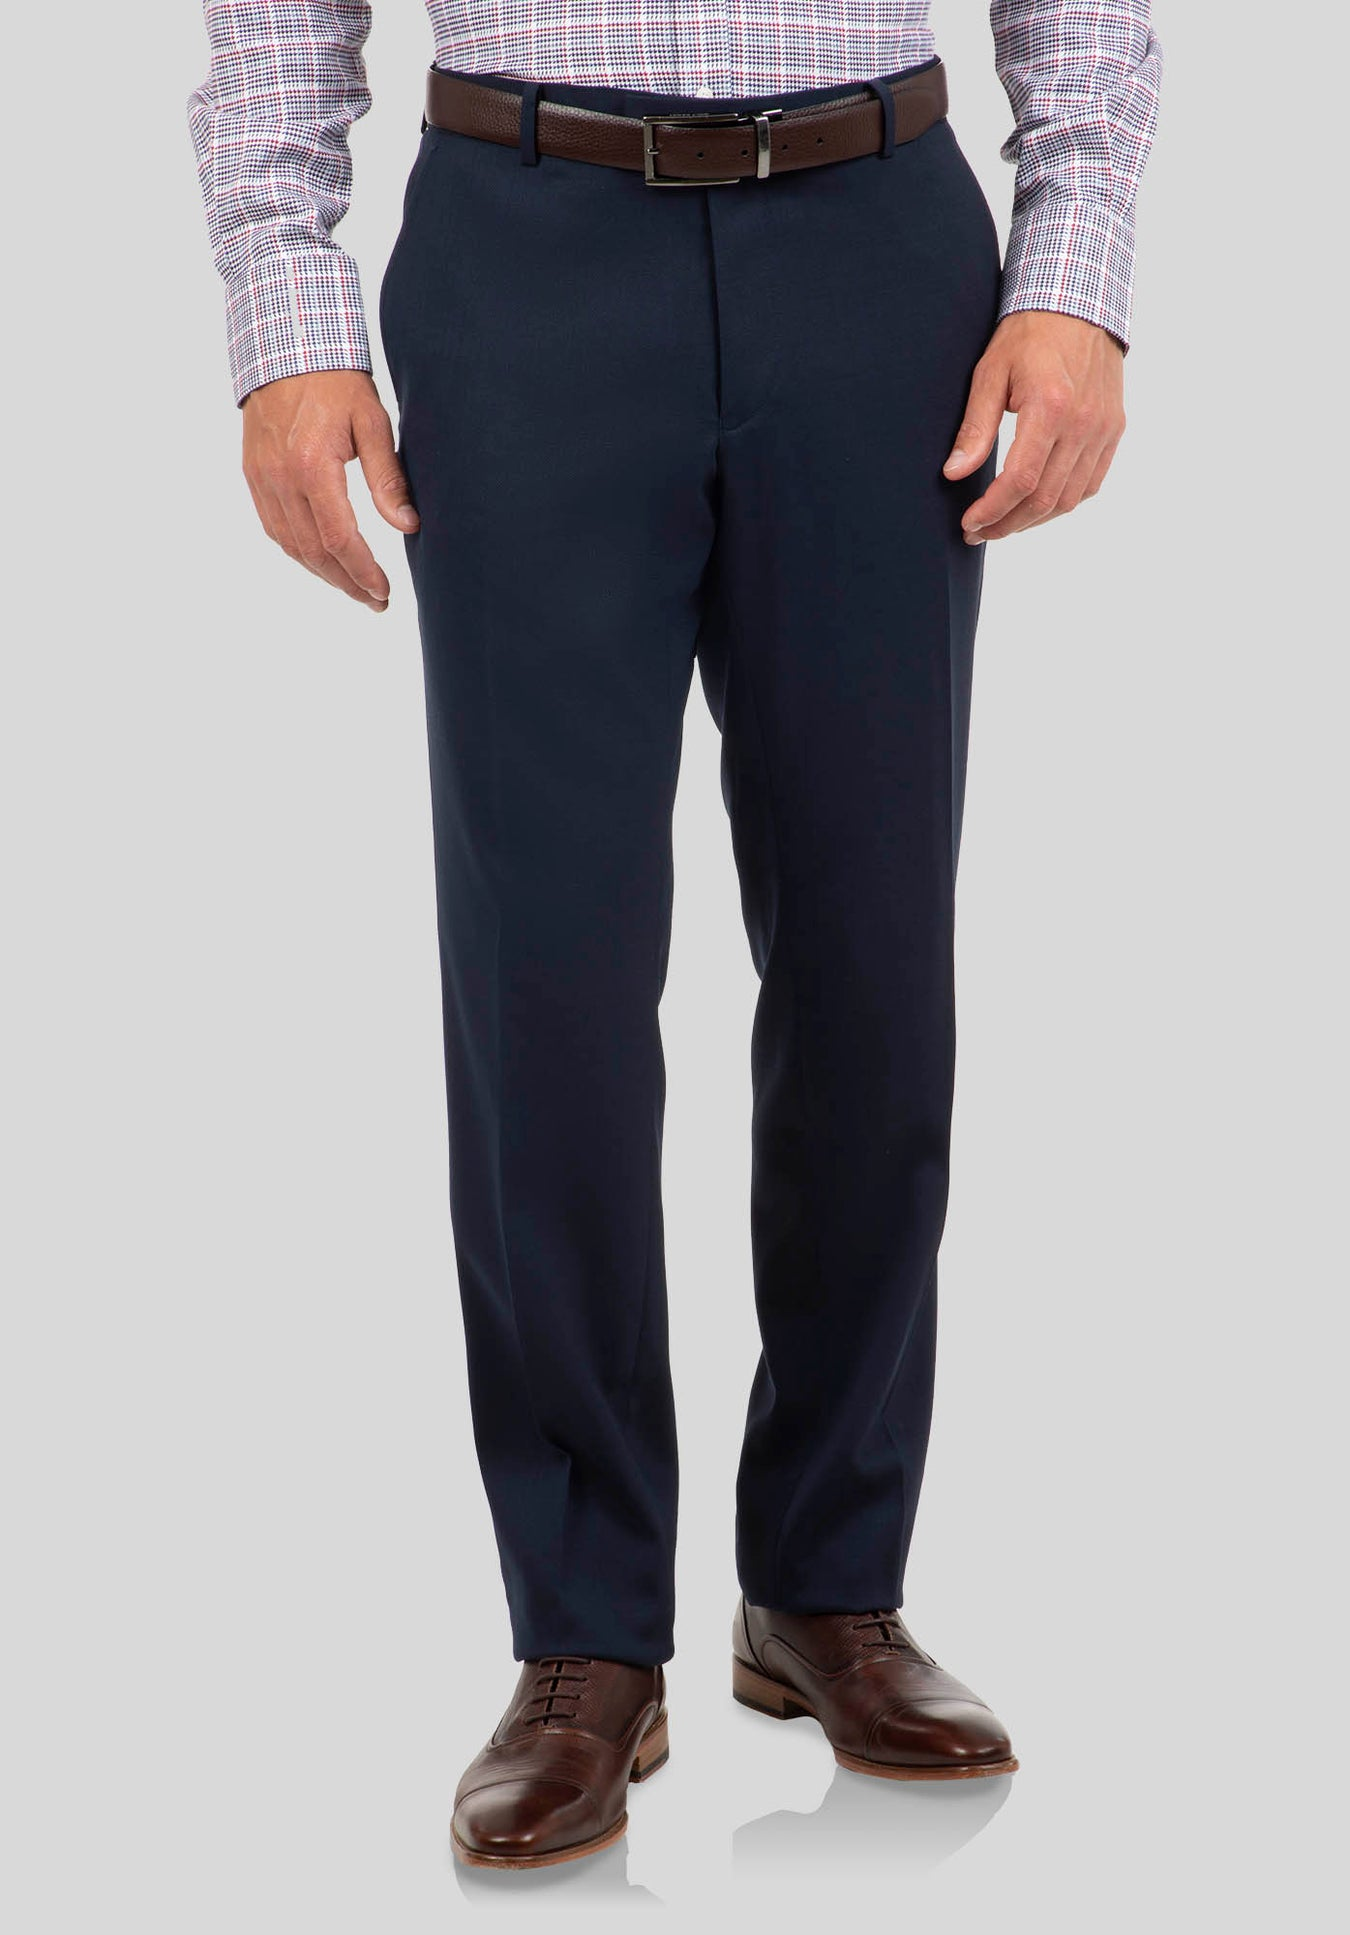 RAZOR TRAVEL TROUSER FJK833 - Navy